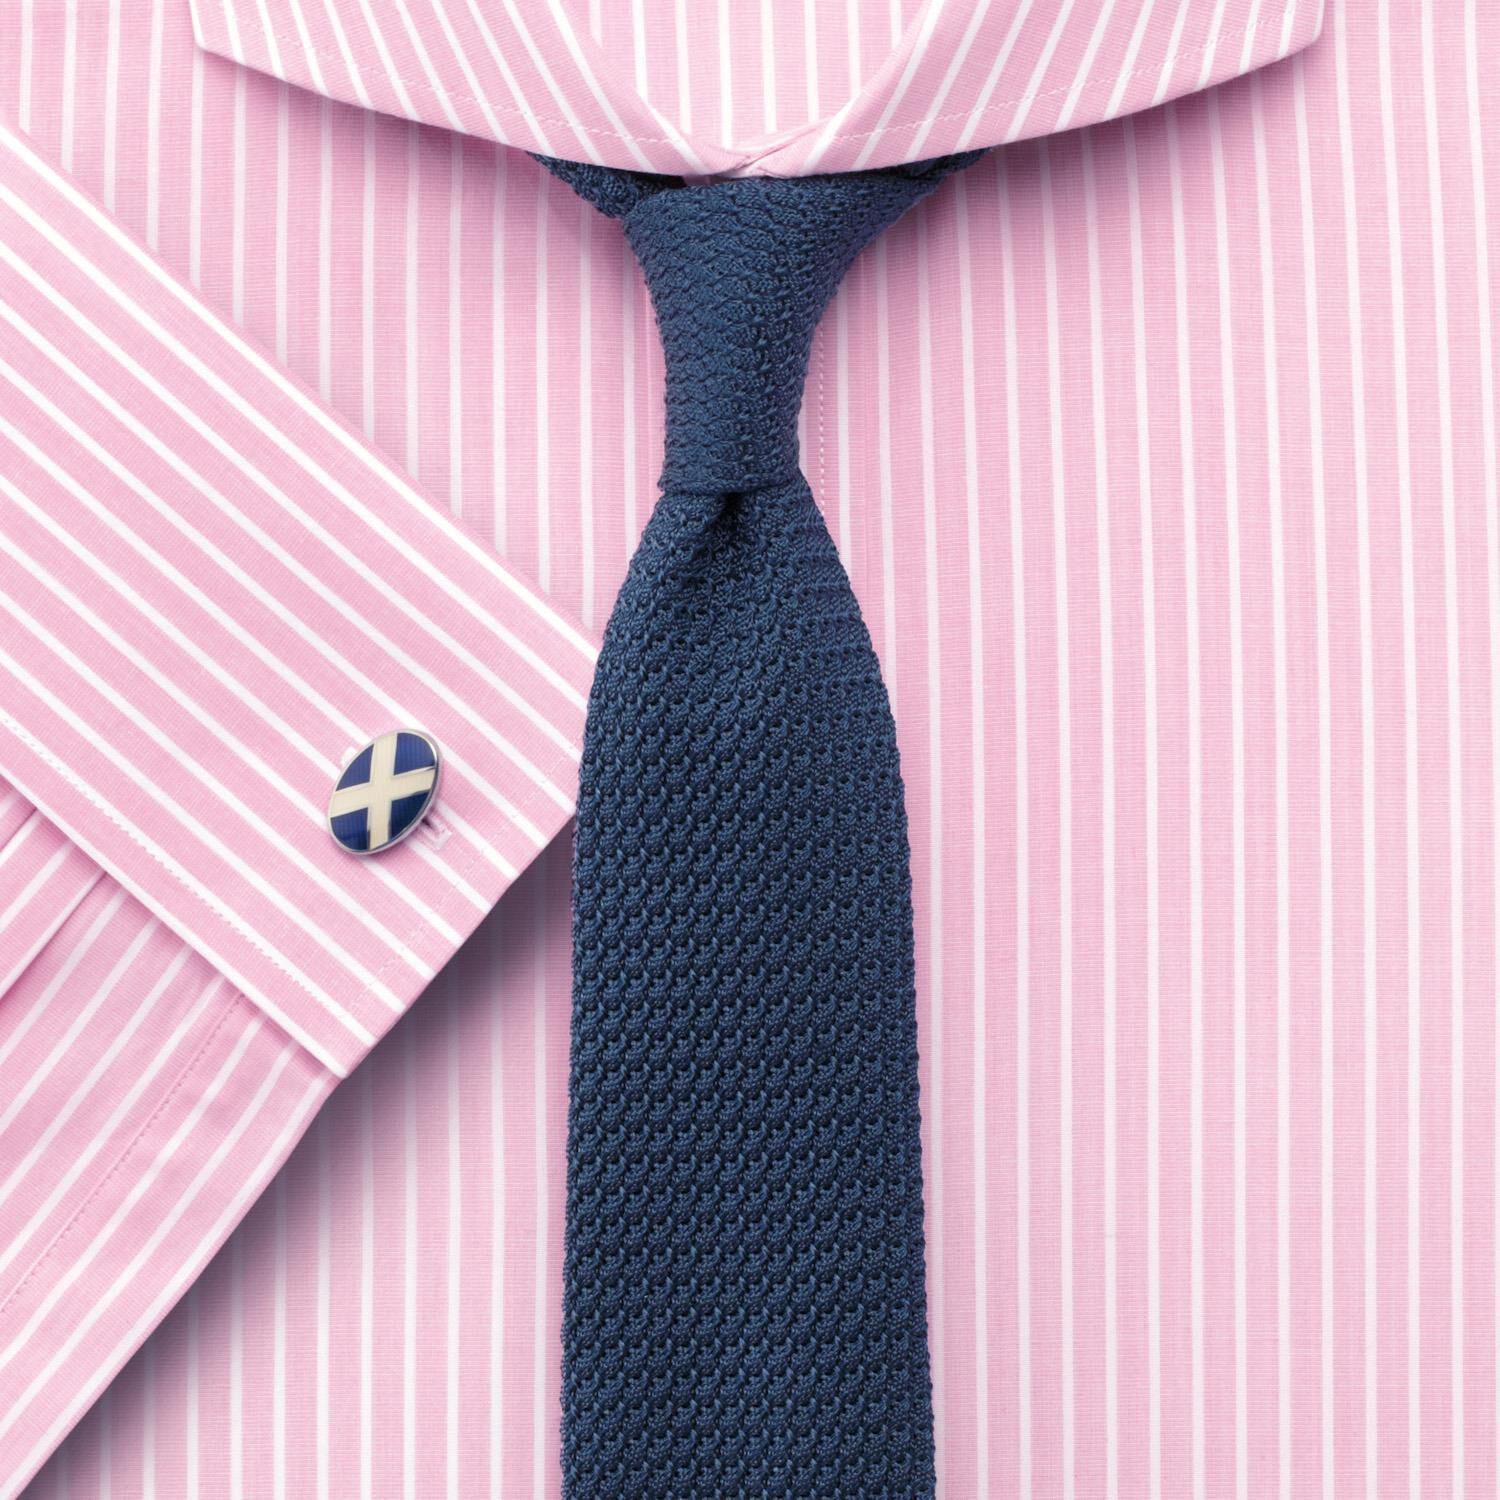 Slim Fit Extreme Cutaway Collar End-On-End Stripe Pink Cotton Formal Shirt Single Cuff Size 18/36 by